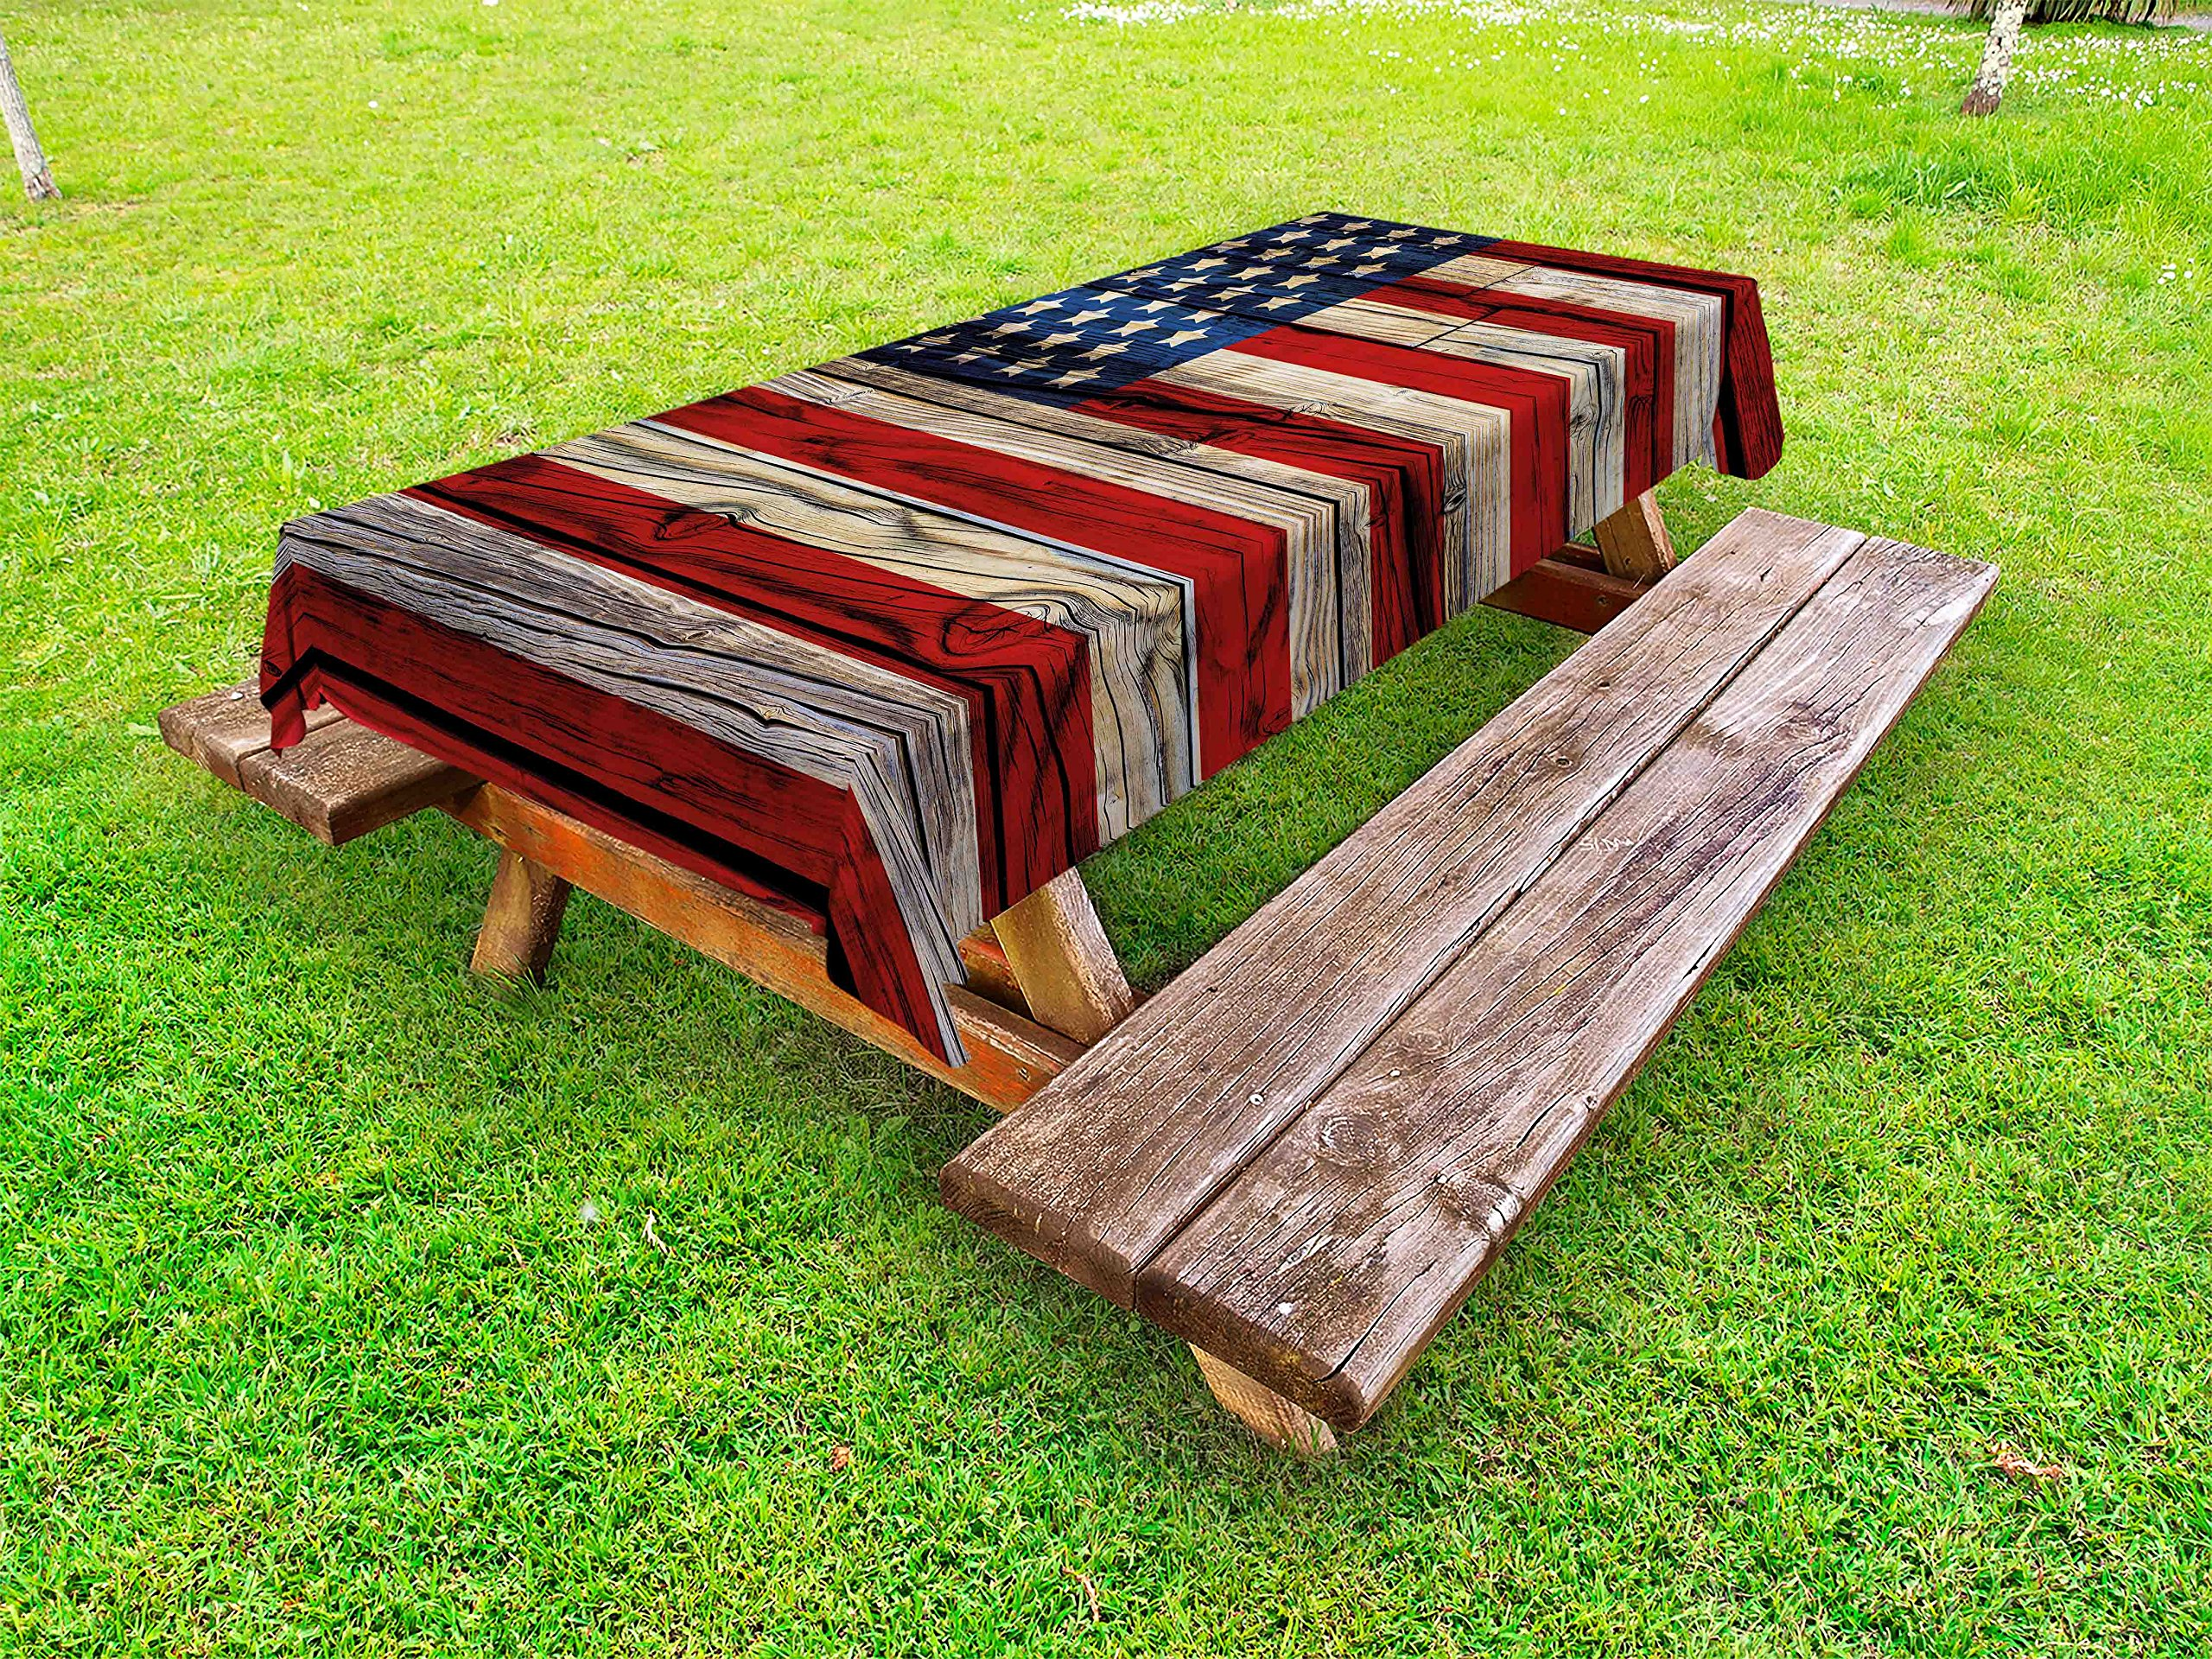 Ambesonne 4th of July Outdoor Tablecloth, Wooden Planks Painted as United States Flag Patriotic Country Style, Decorative Washable Picnic Table Cloth, 58'' X 120'', Red Beige